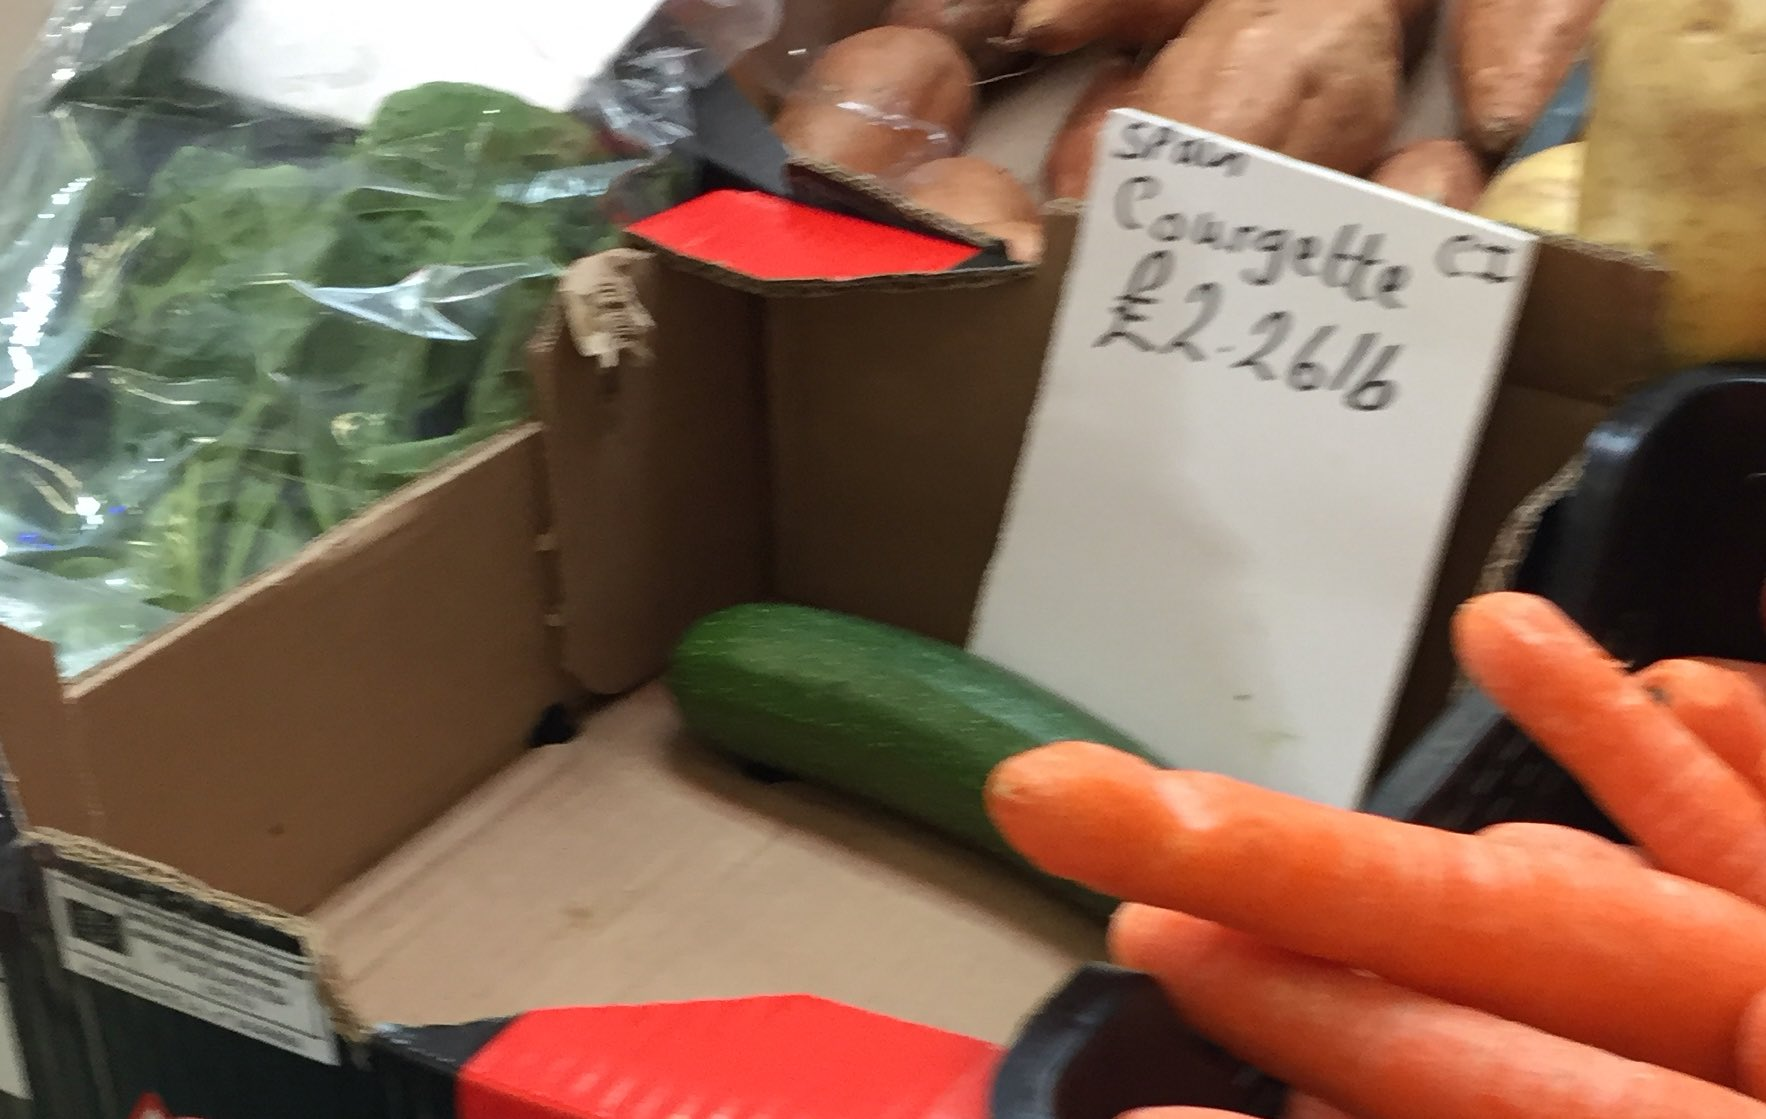 The #courgettecrisis reaches #Cornwall - veg seller in #Truro's Pannier Market paid £23 for a box at the wholesalers - normally it's £8! https://t.co/3ffwD1QR13